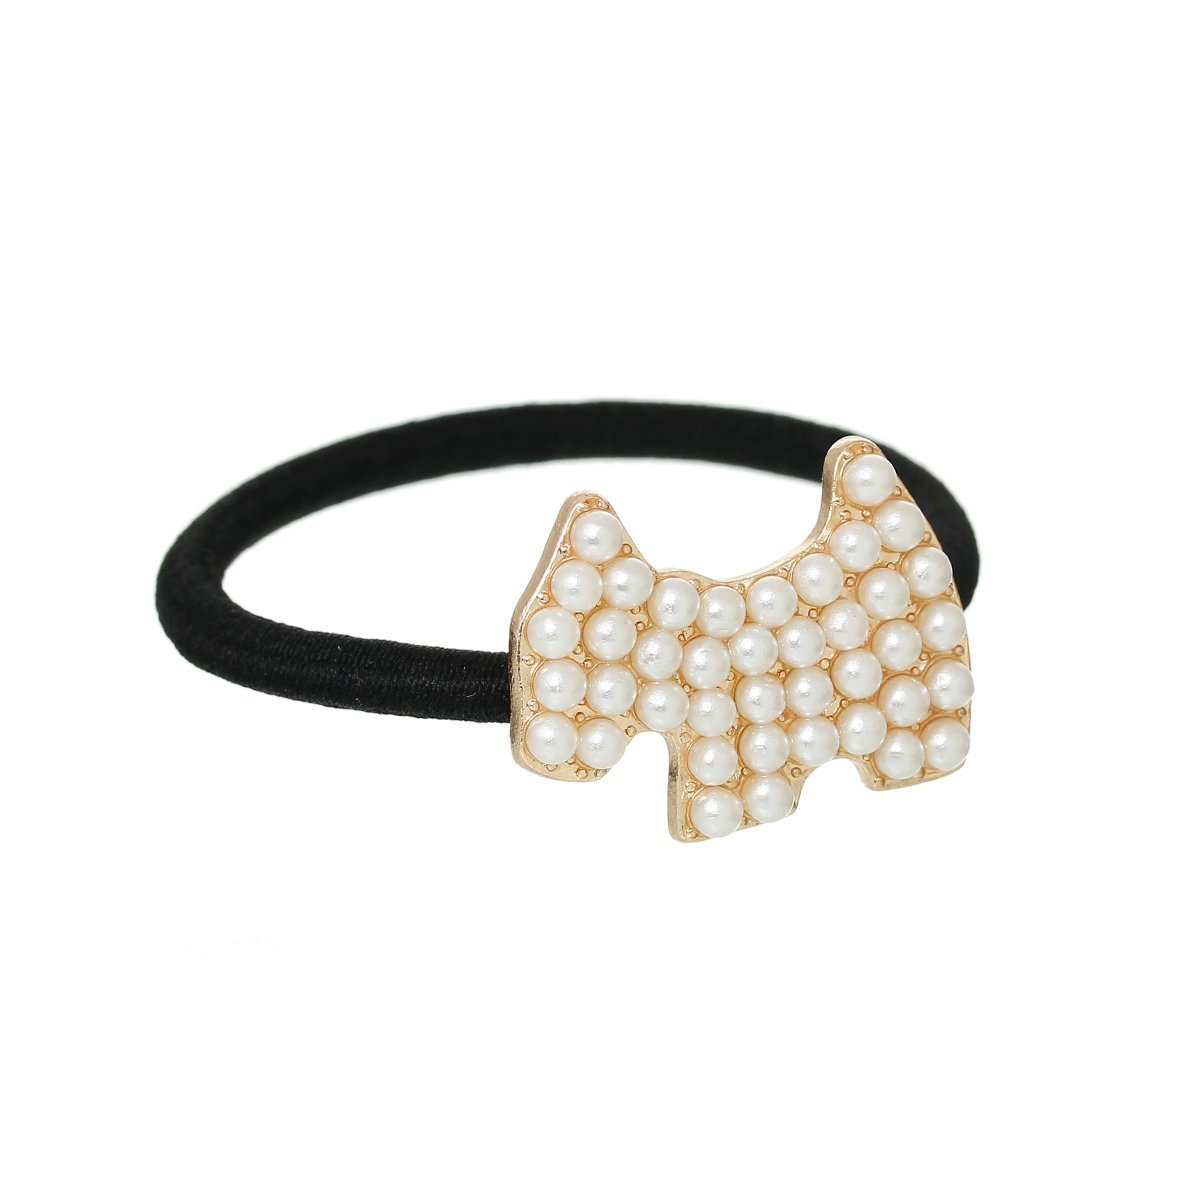 Nylon Cirlce Ring Hair Band Ponytail Holder Black Acrylic Imitation Pearl Choose Your Style From Menu (Dog)